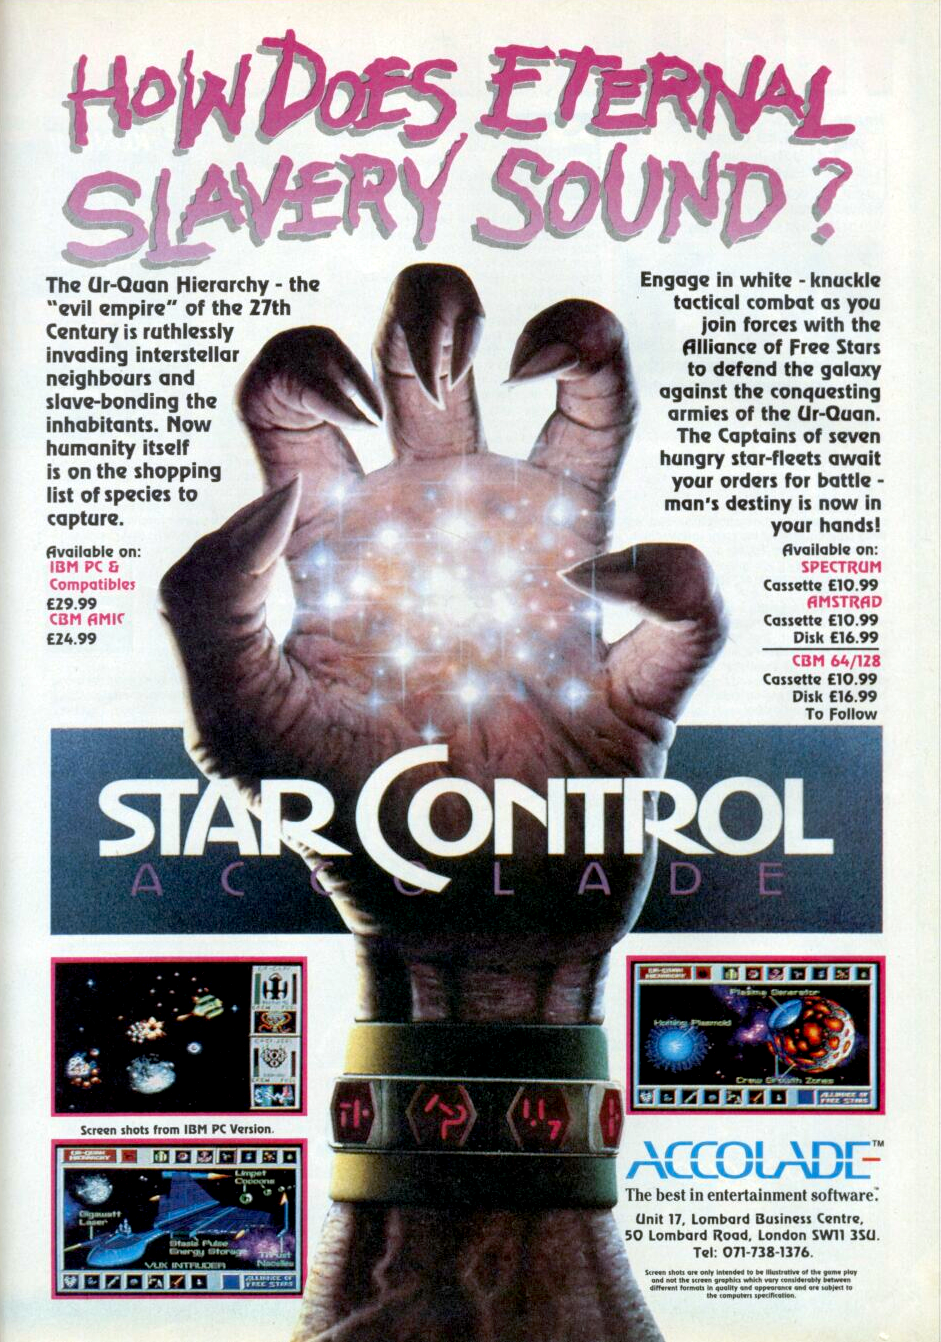 """Description Star Control is a science-fiction wargame which pits the forces of the Alliance of Free Stars against those of the predatory Ur-Quan Hierarchy. The games are designed so that you can ease into play, familiarizing yourself with menus, options and player controls. The Alliance and Hierarchy each possess different types of warships. Each vessel has its own maneuvering and firing characteristics, plus a unique special power that you can employ when circumstances dictate.  The game has two modules: the Melee, in which you can simply blast the computer or another player to smithereens using one of 16 different ships, in either Hierarchy or Alliance fleets; or, should you wish for a more challenging game, lets you play one of 9 preset scenarios.   Trivia   Inspiration The """"special thanks"""" in the manual list off an equally large number of sci-fi authors whose work in some way influenced the game. It's fairly rare for game designers to be so rigorous in documenting their inspirations.   References The vast majority of captain names in the game were taken from various famous and semi-famous sci-fi sources. (far too many to list here. For example, there's a Syreen Captain Alia (from Dune) and an Earth Captain Pike (from Star Trek))   Title From almost the very beginning of his video game design career, Paul Reiche III has revisited the theme of pitting varied teams of carefully balanced but widely varied opponents against each other, first in 1983's Archon and most recently in 1998's The Unholy War (and its Japanese analogue, Little Witching Mischiefs).  Star Control also falls in the middle of this chain, and its heritage is plainly spelled out phonetically in its abbreviation:      __Archon     Star_Con   [Genesis/Megadrive version]   Rampant slowdown marred much of the core gameplay on the Genesis, much to the chagrin of the creators, who were not given the time by Accolade to optimize the gameplay for the platform.[2][3] This led to a lawsuit between Accolade a"""